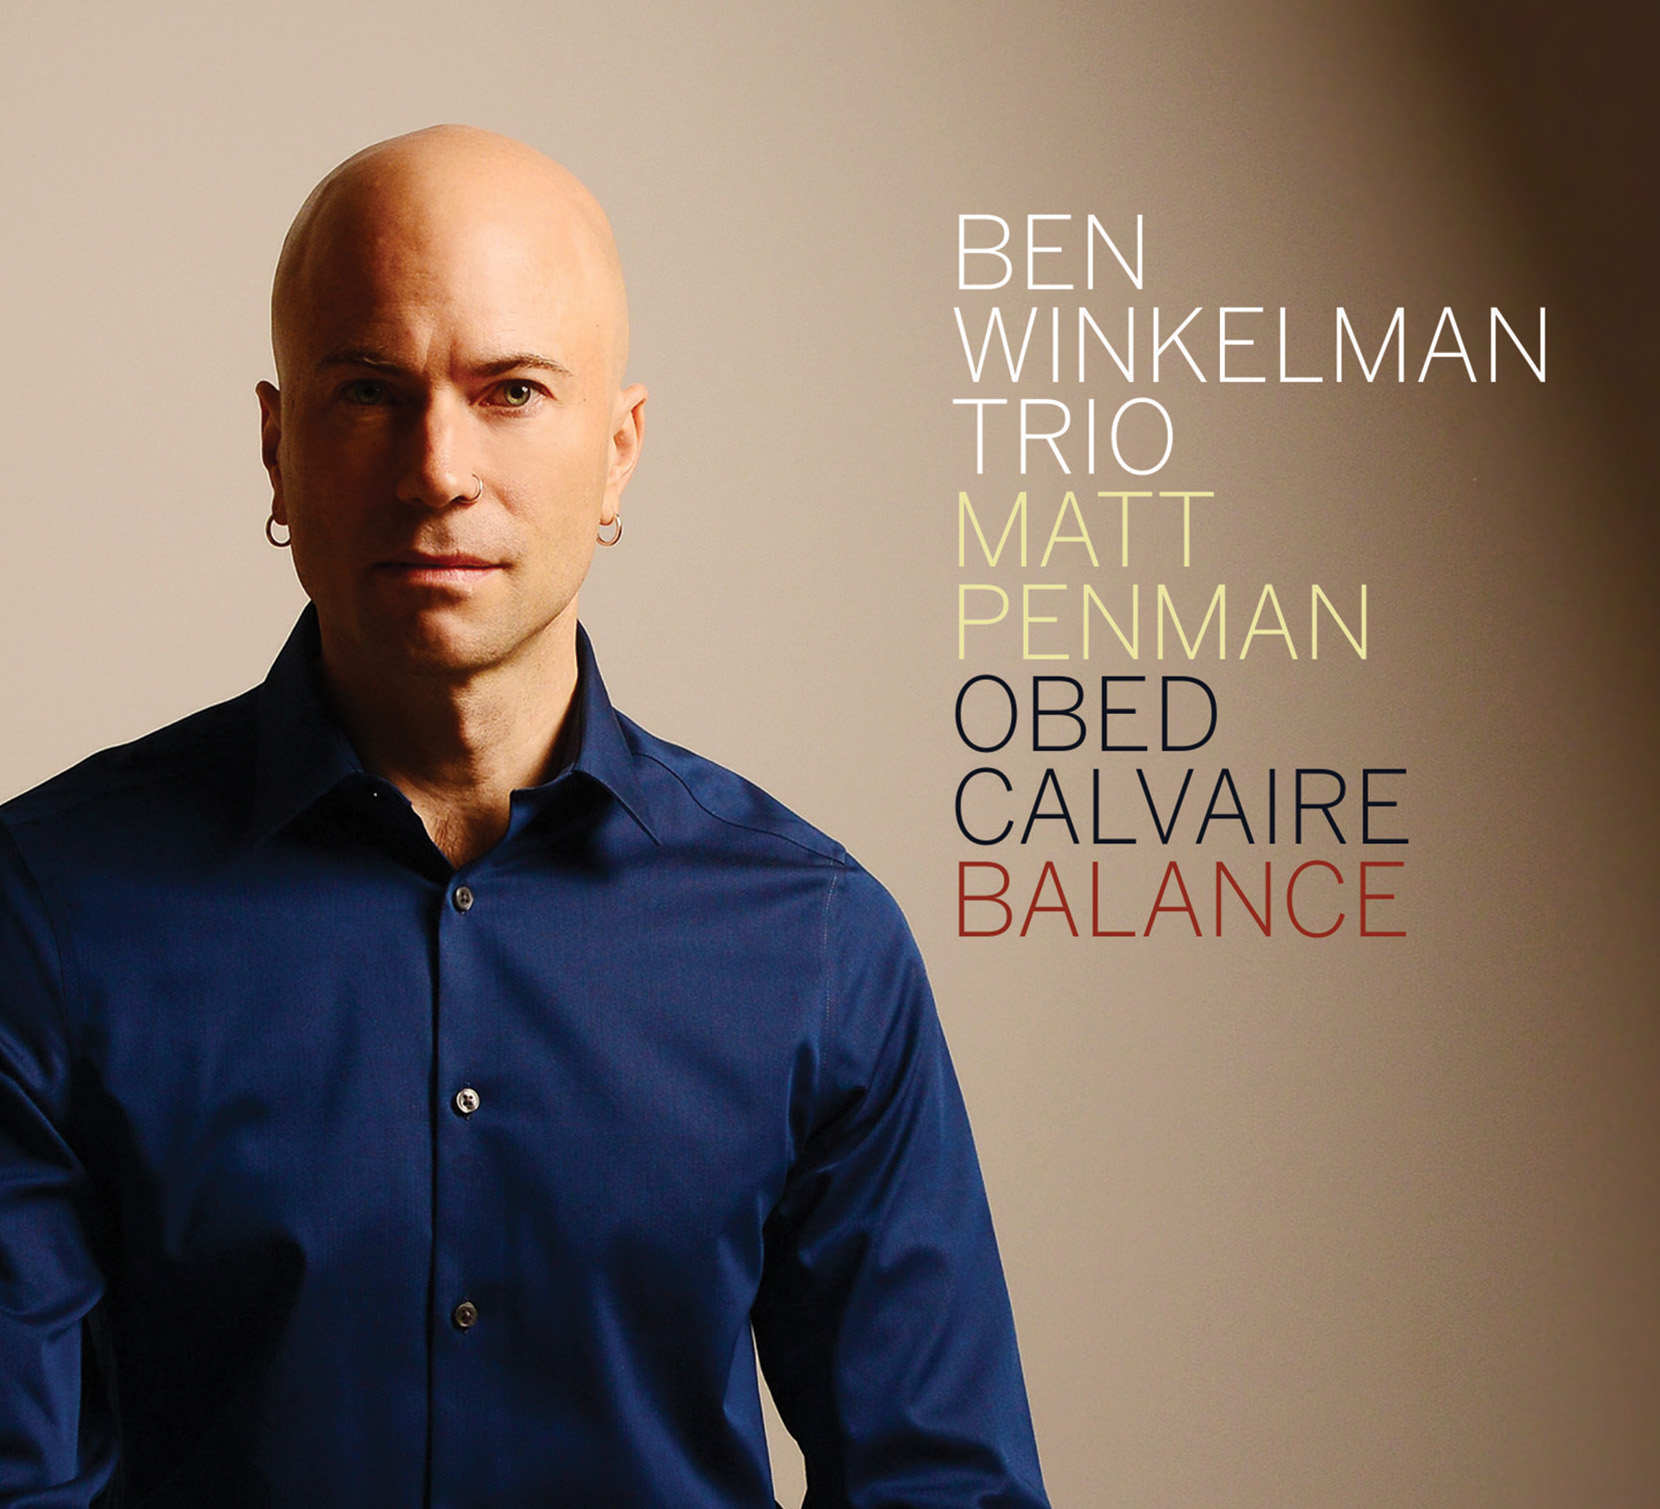 REVIEW: Ben Winkelman Trio's 'Balance' Reviewed by Midwest Record